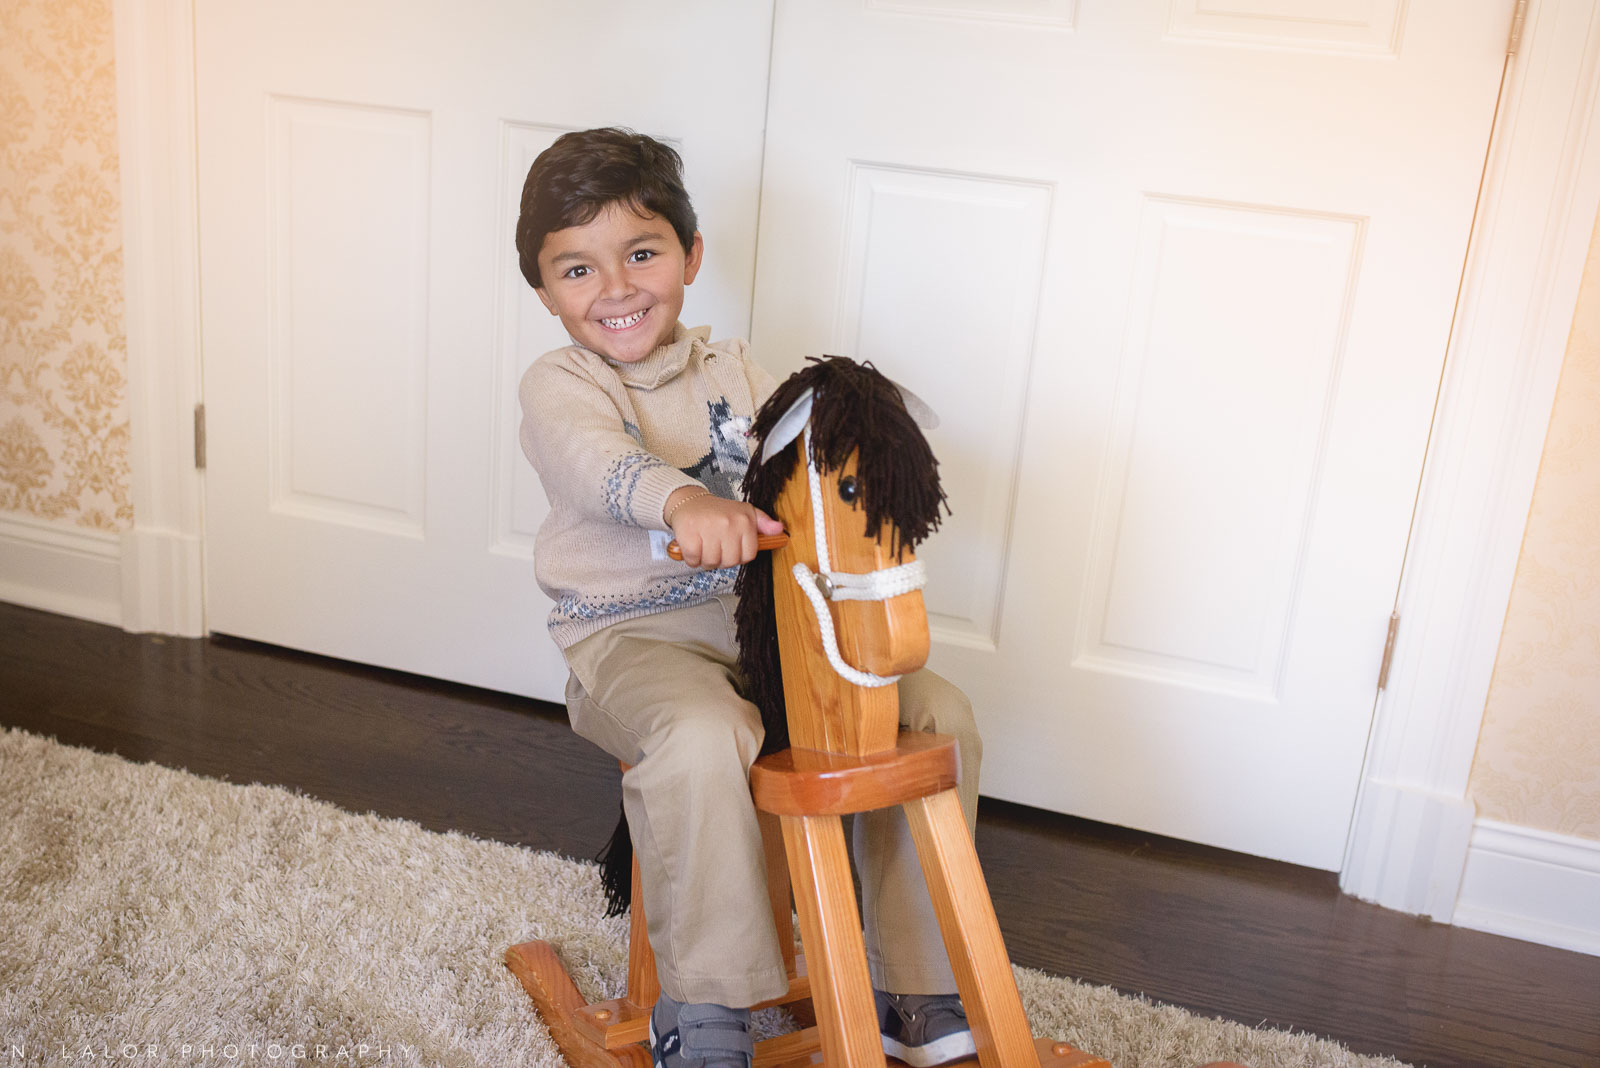 Happy smiling 4-year old boy on a rocking horse. Lifestyle portrait by N. Lalor Photography.